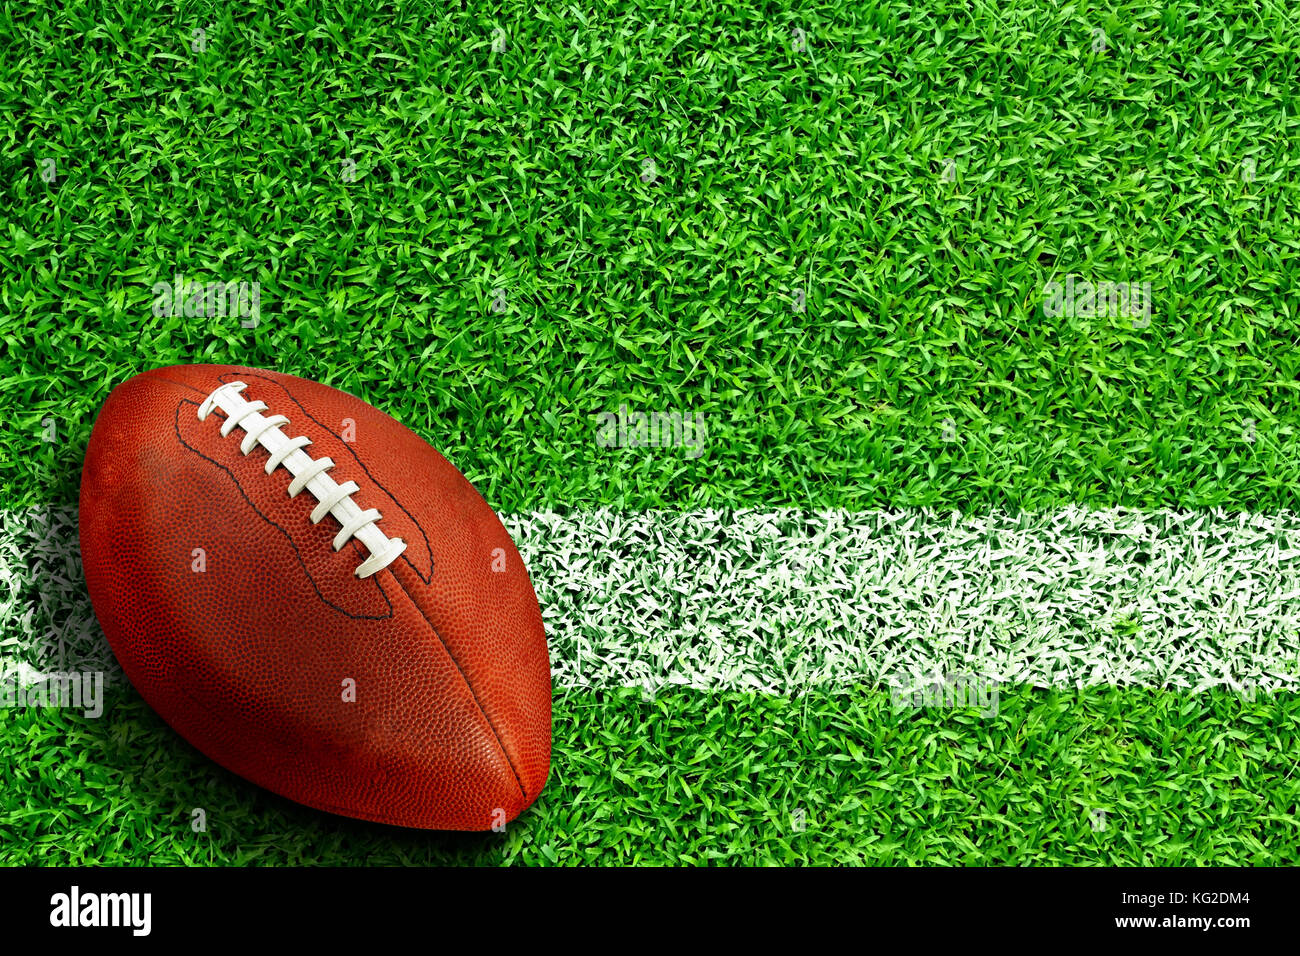 Football on field with white line marking and copy space. Line represents goal line in the end zone, inbound line - Stock Image